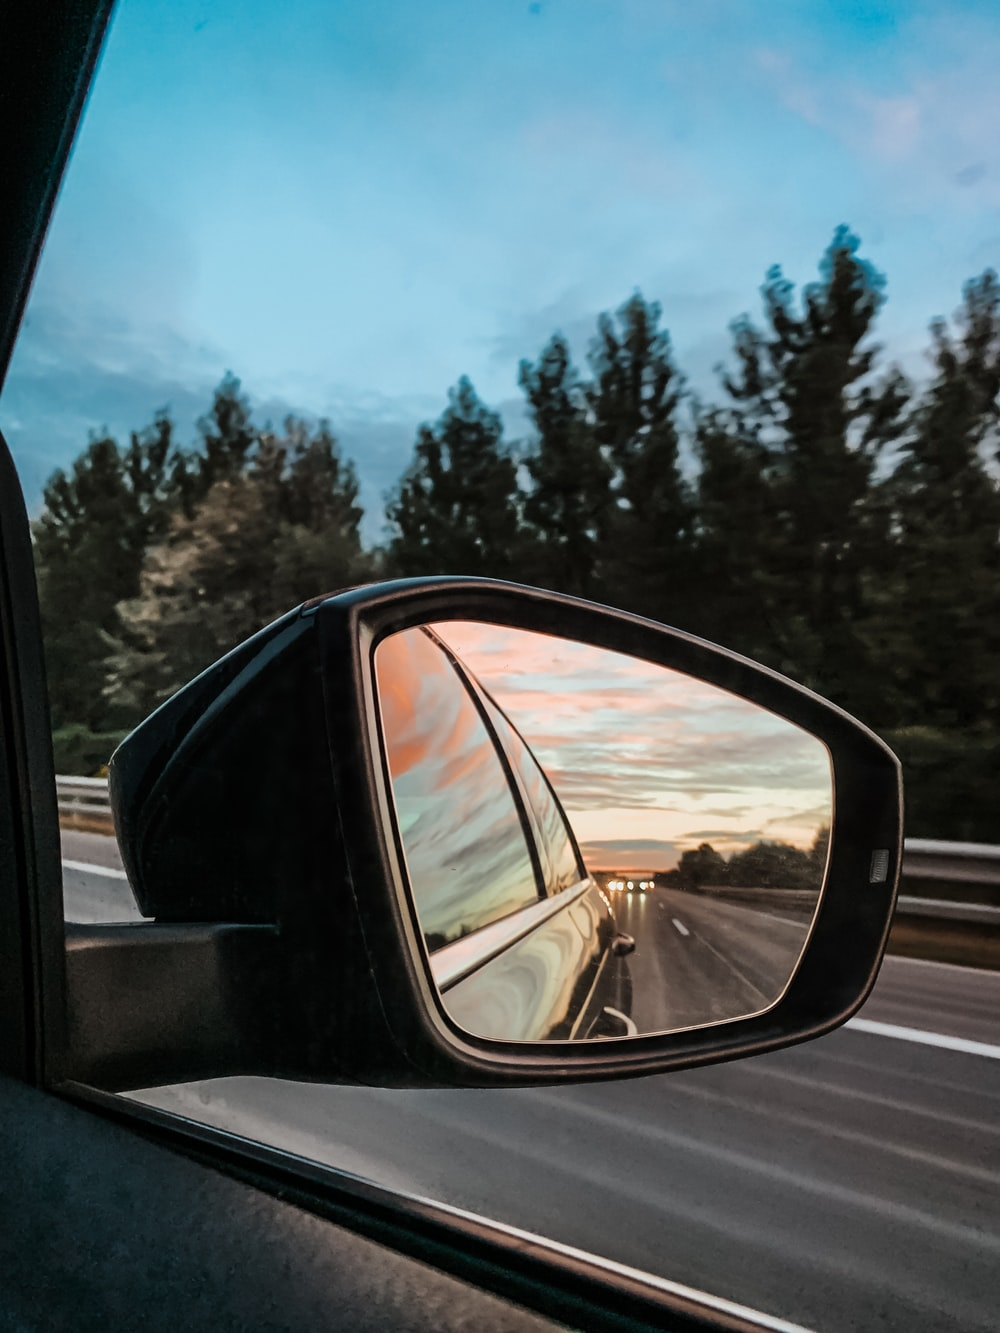 car side mirror showing car on road during daytime